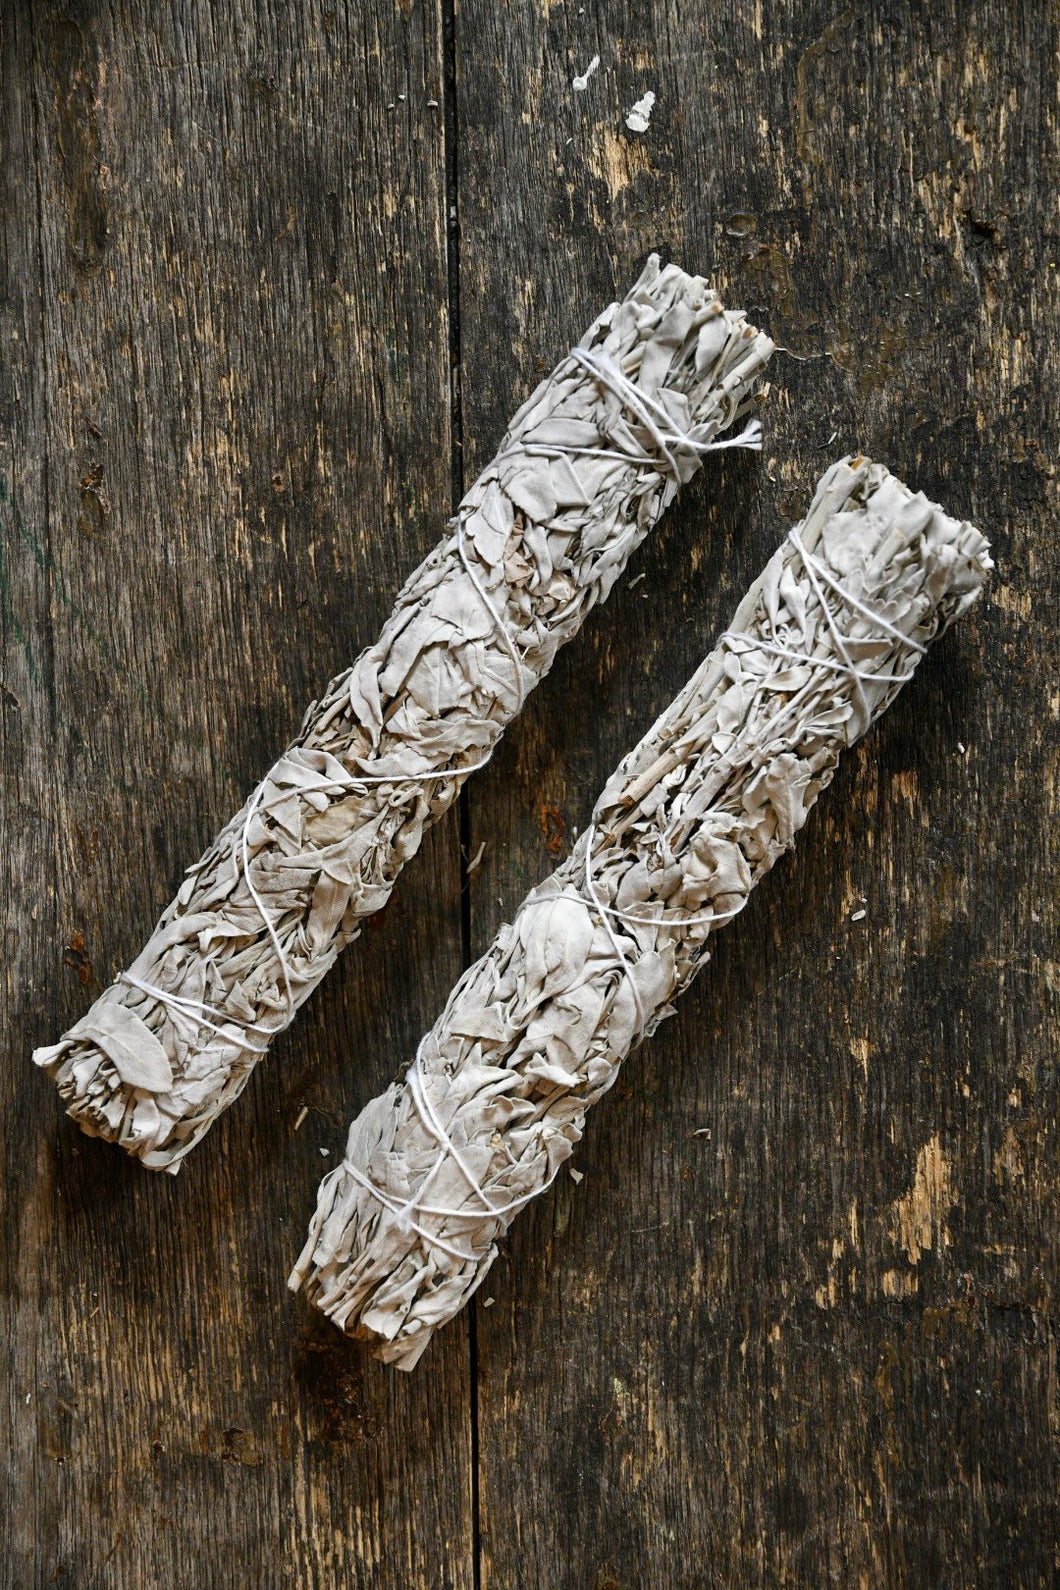 Large White Sage Smudge Sticks (Set of 2)